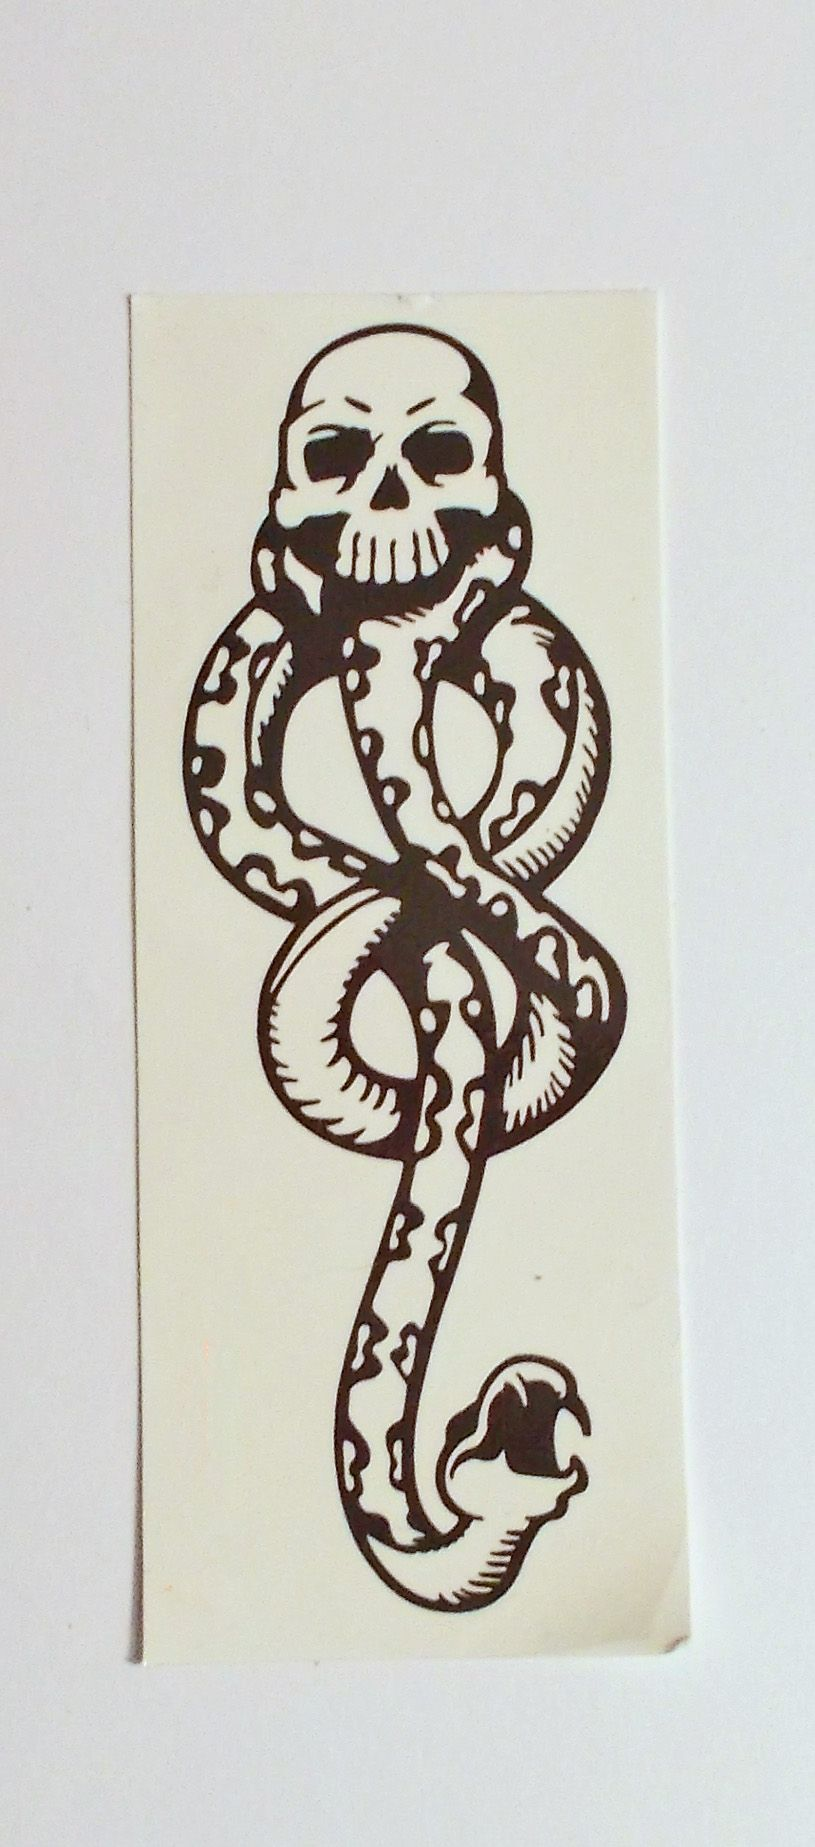 This is a temporary tattoo of the Dark Mark, the symbol of